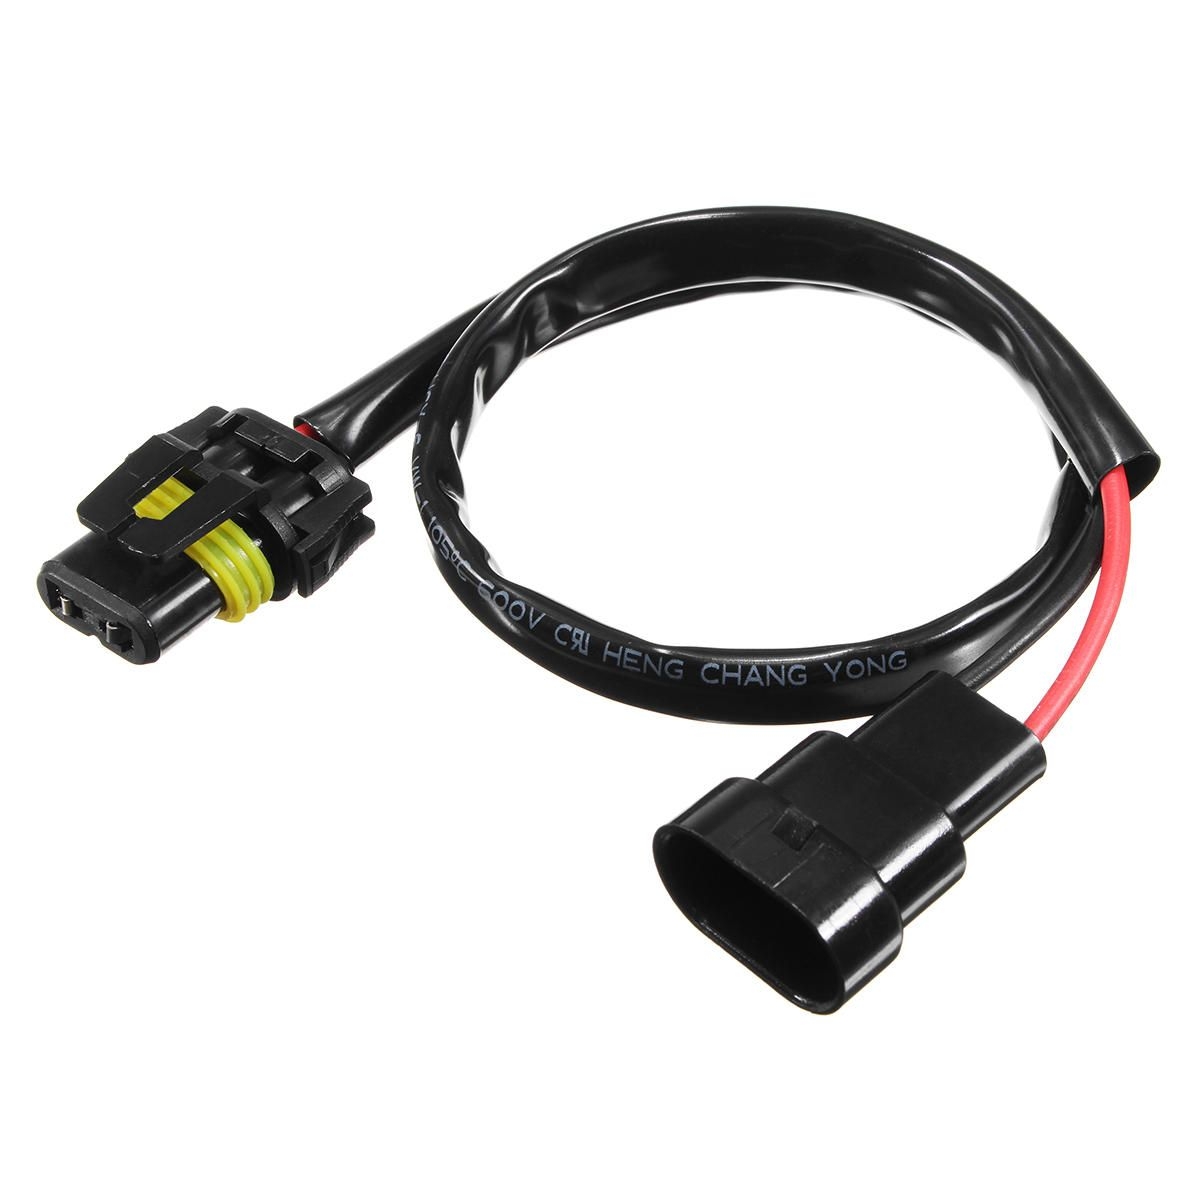 Us269 2pcs Hb4 Wire Harness Hid Xenon Power Cable Connector Wiring Ballast Socket Adapter Conversion